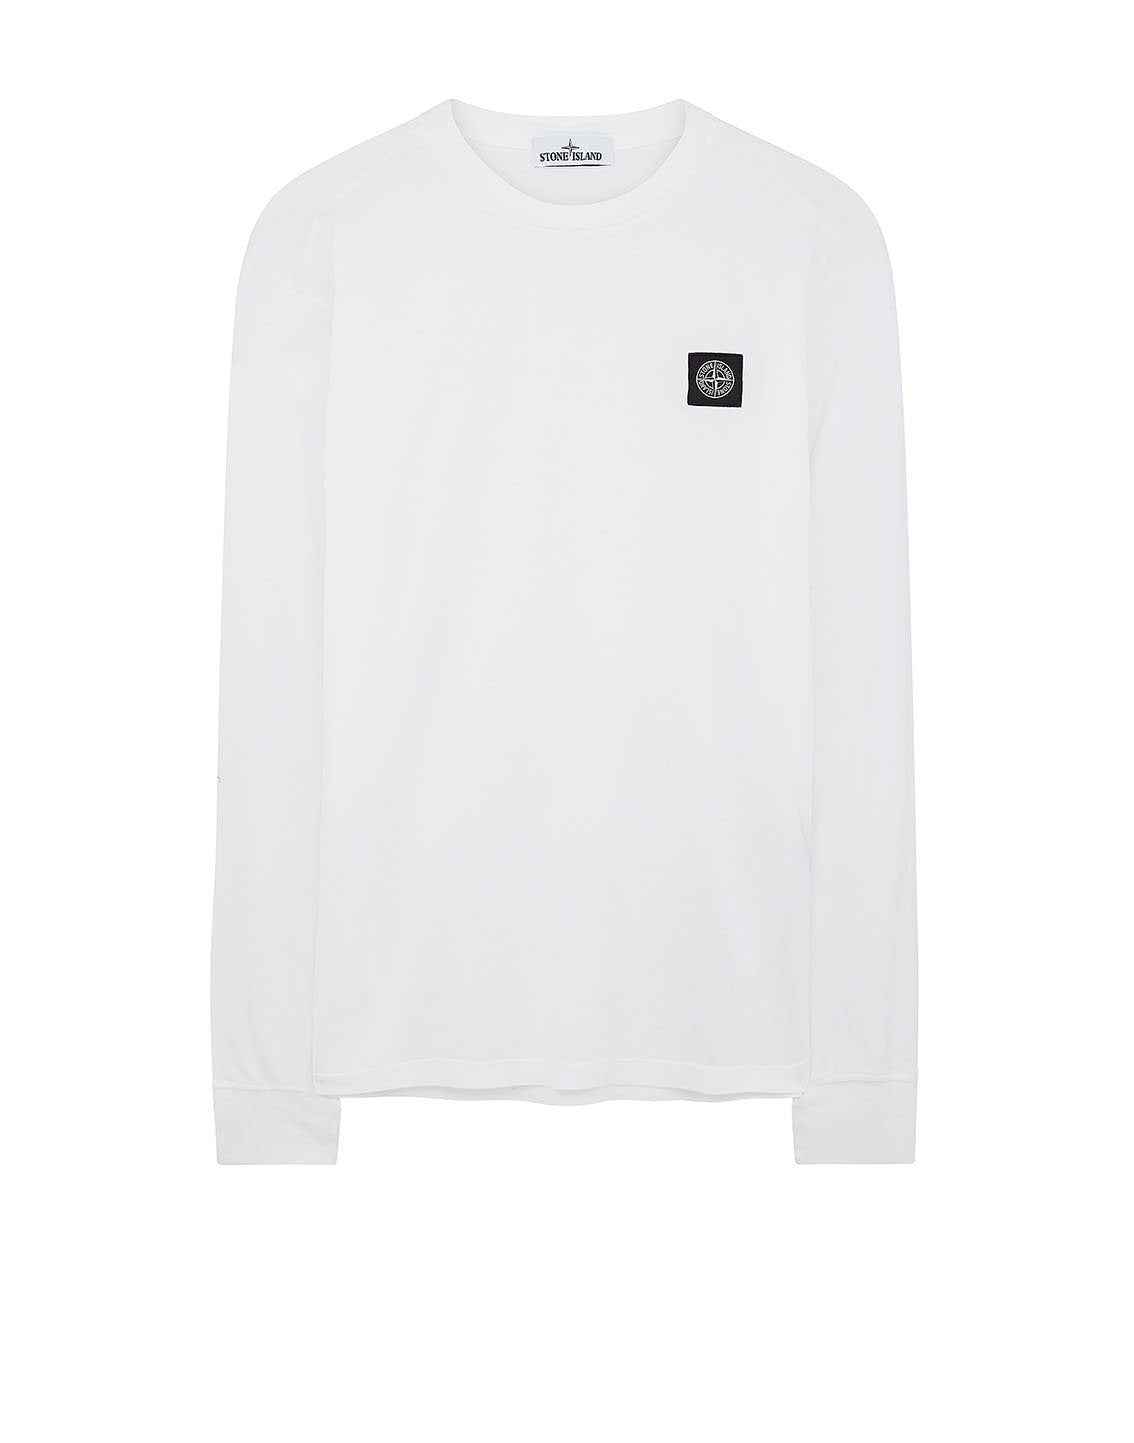 22713 T-Shirt in White